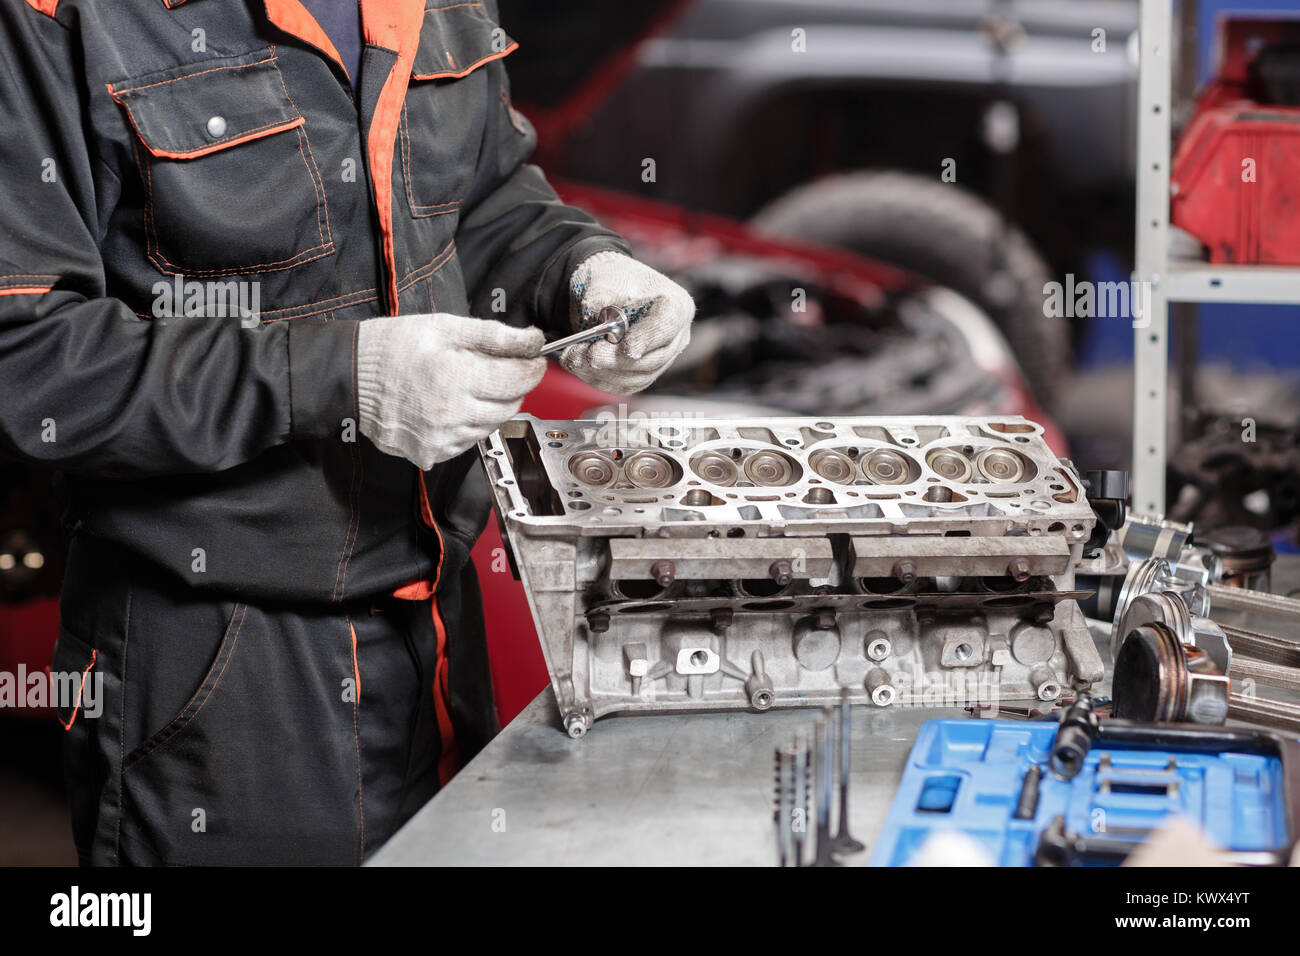 Selective focus. Engine Block on a repair stand with Piston and Connecting Rod of Automotive technology. Blurred - Stock Image